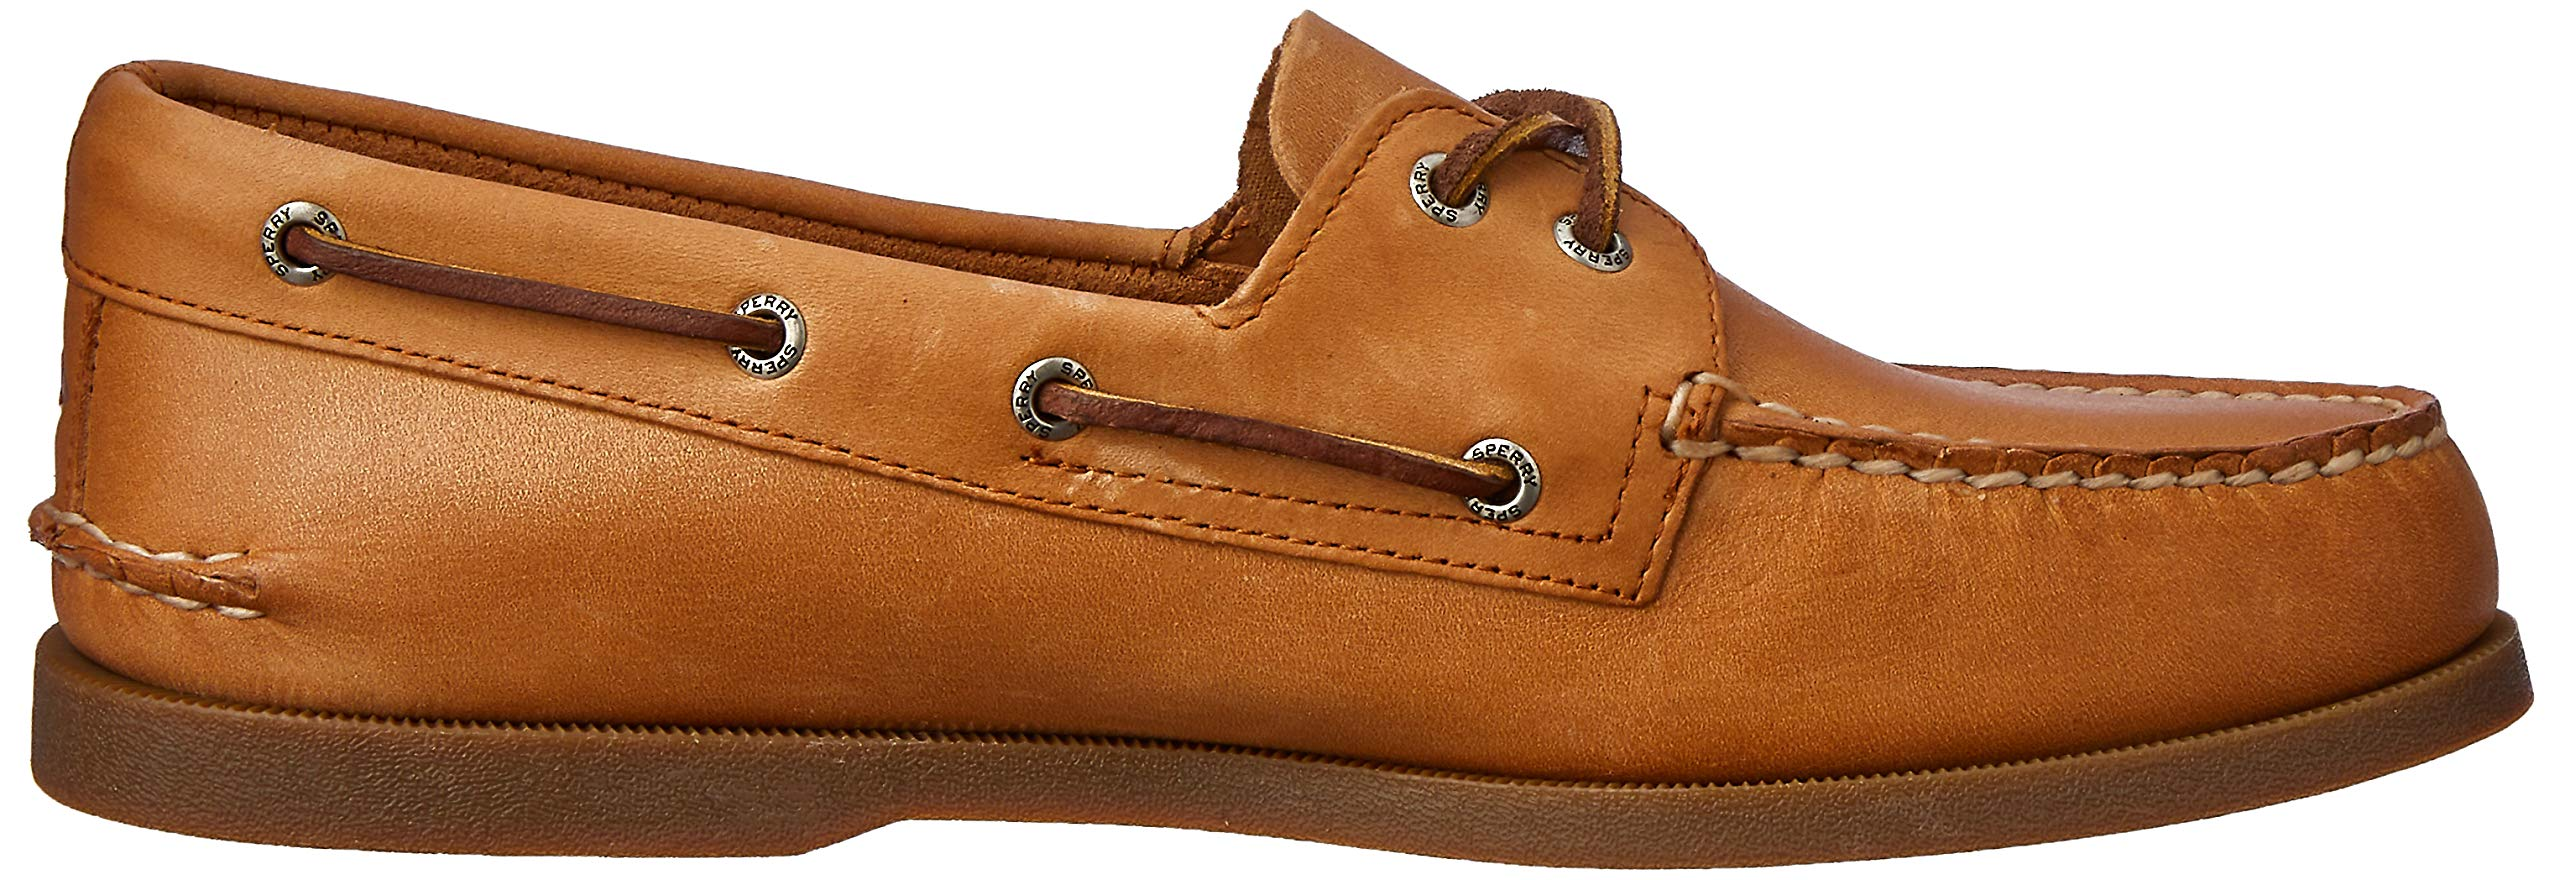 Sperry Top-Sider Authentic Original Leather Boat Shoe Men 13 Sahara Leather by SPERRY (Image #7)